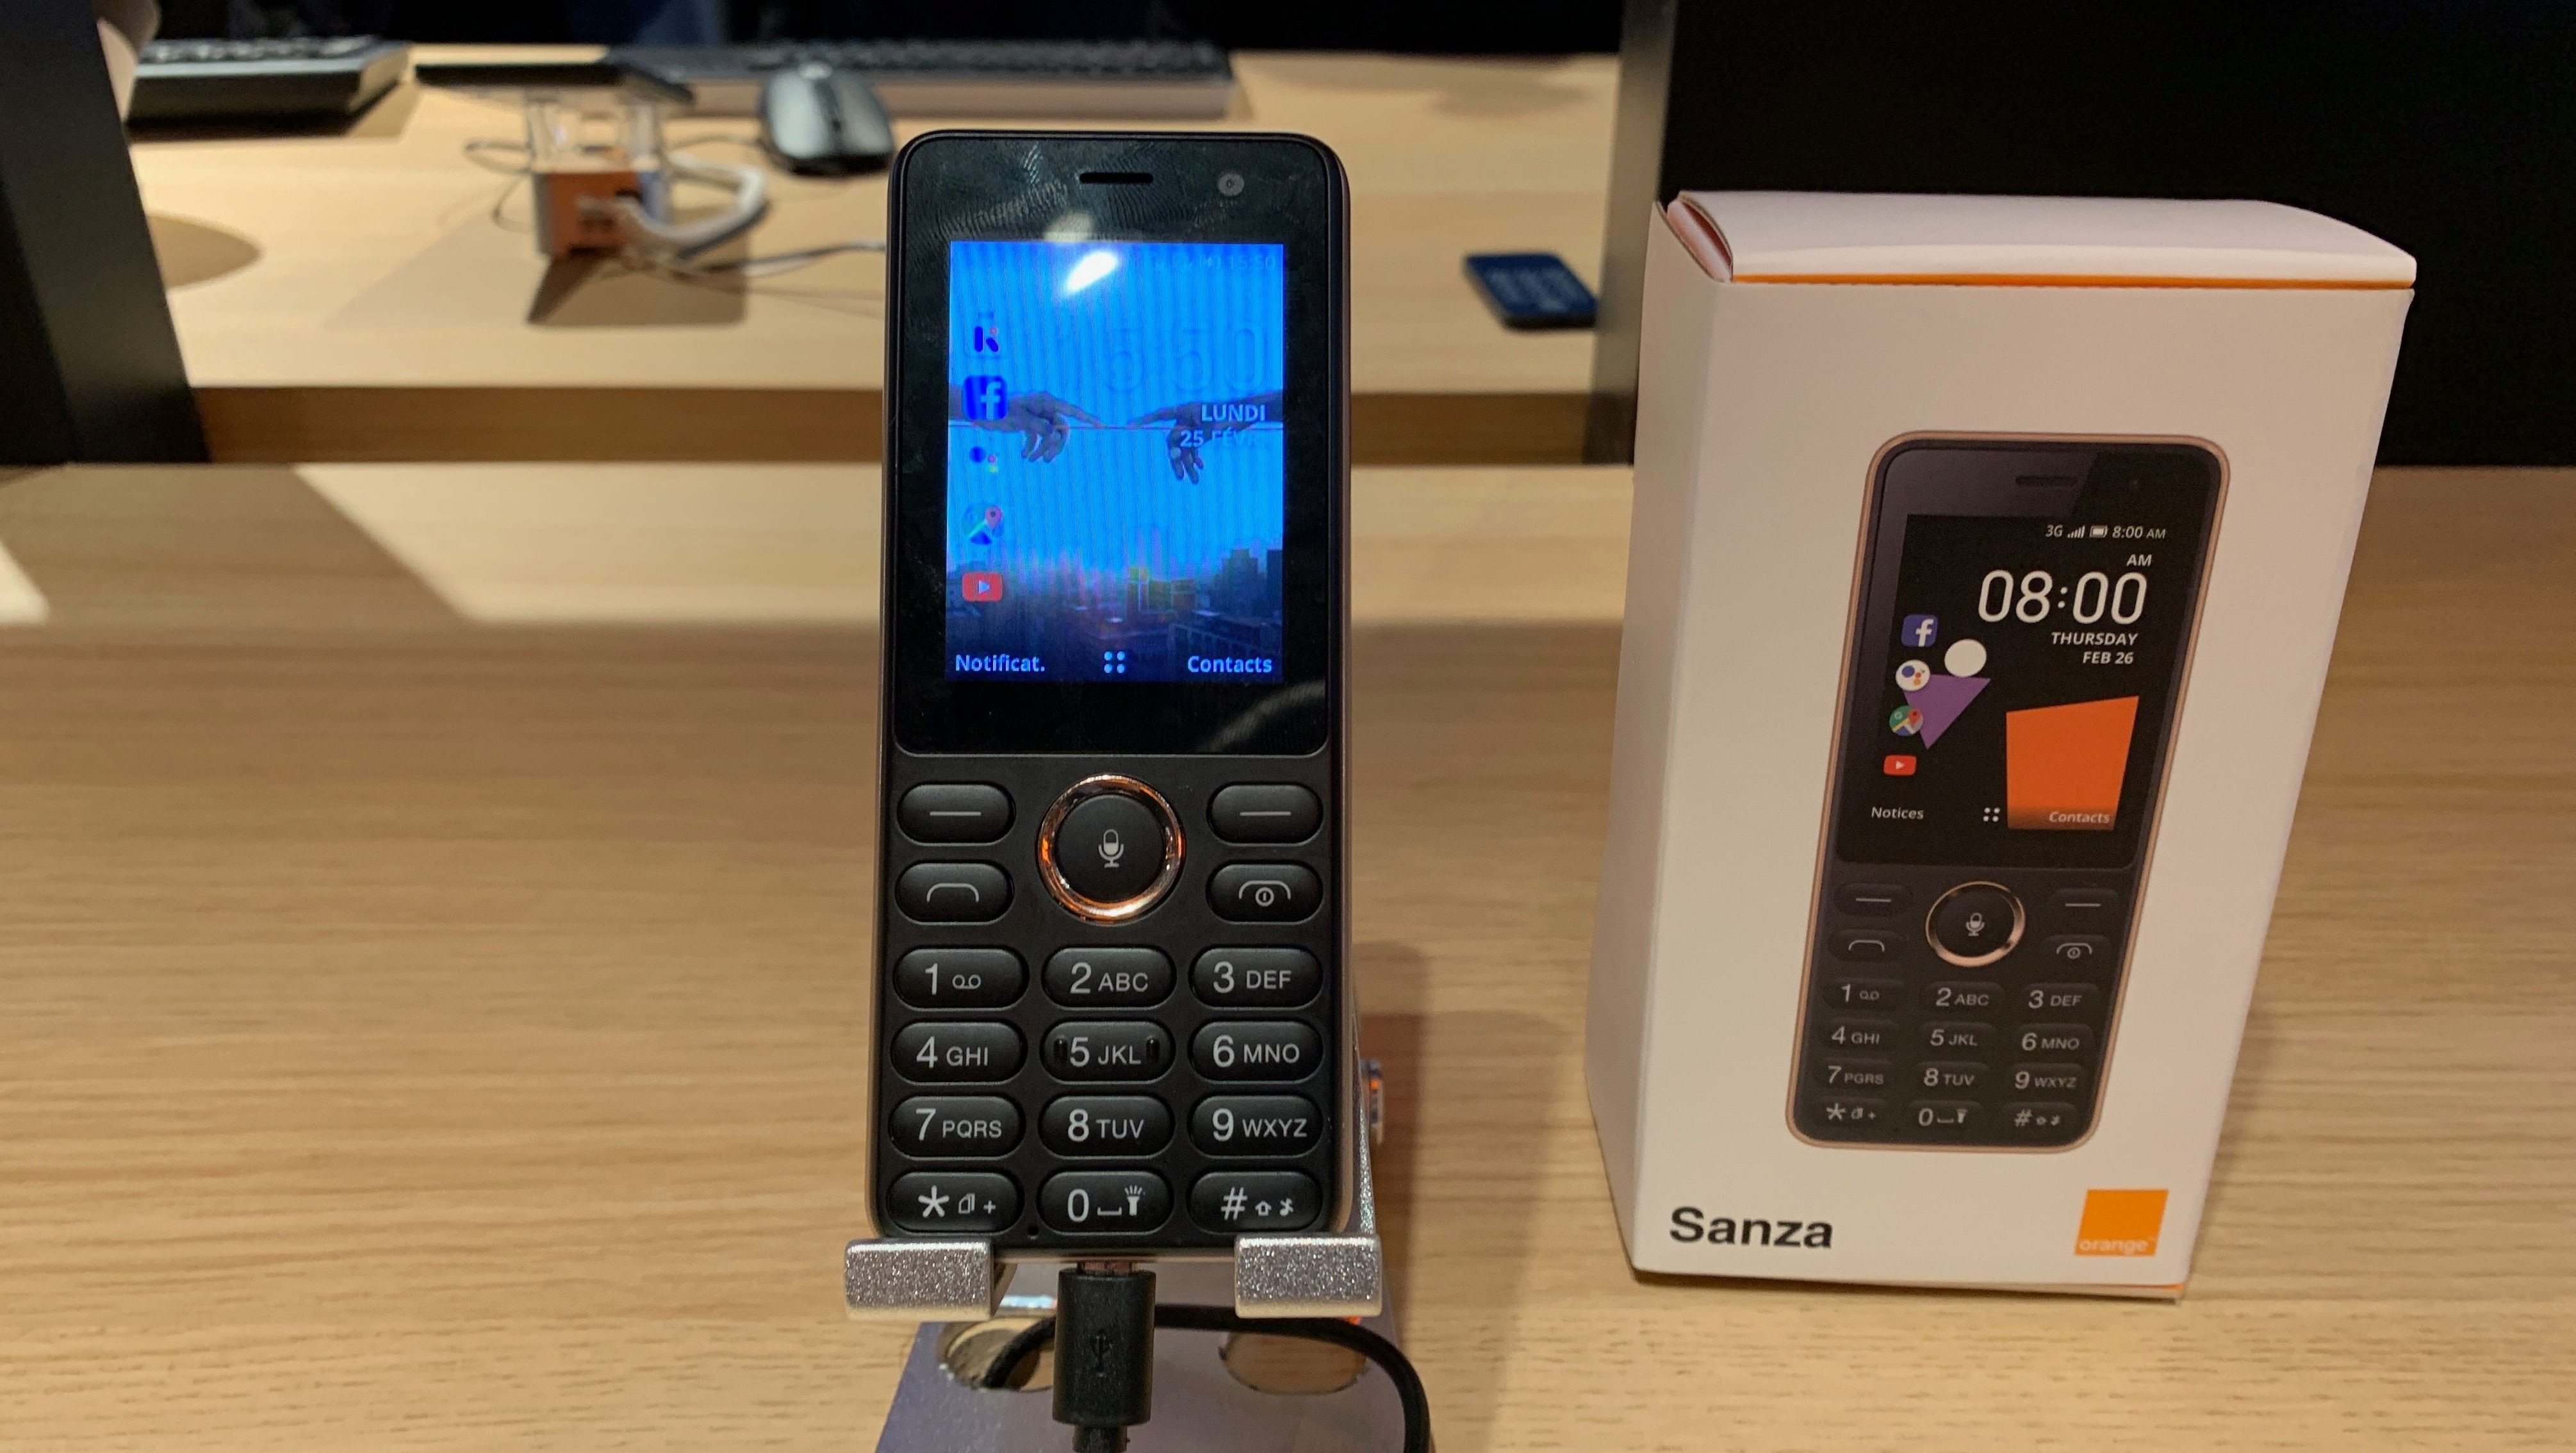 The Sanza smart feature phone